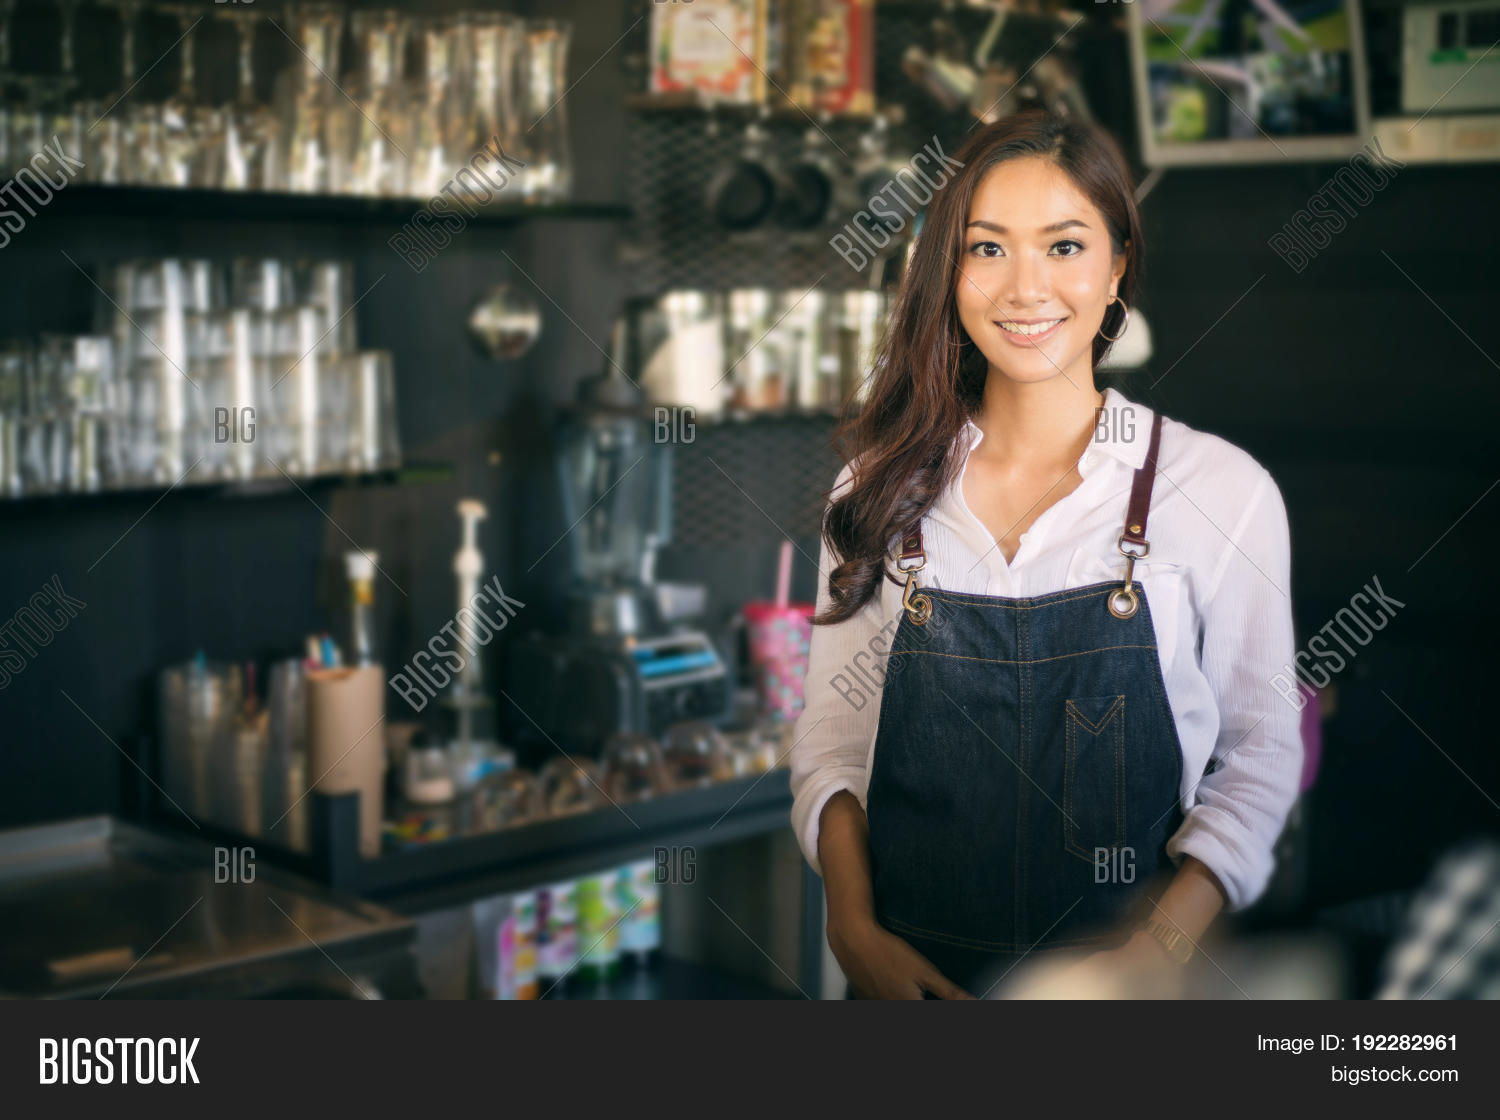 coffee springs asian personals Single lesbian women in coffee springs, al personals and dating in alabama, the yellowhammer state whether you're looking to online dating as your matchmaker for love or just for a date or two, matchcom can help you meet your match.